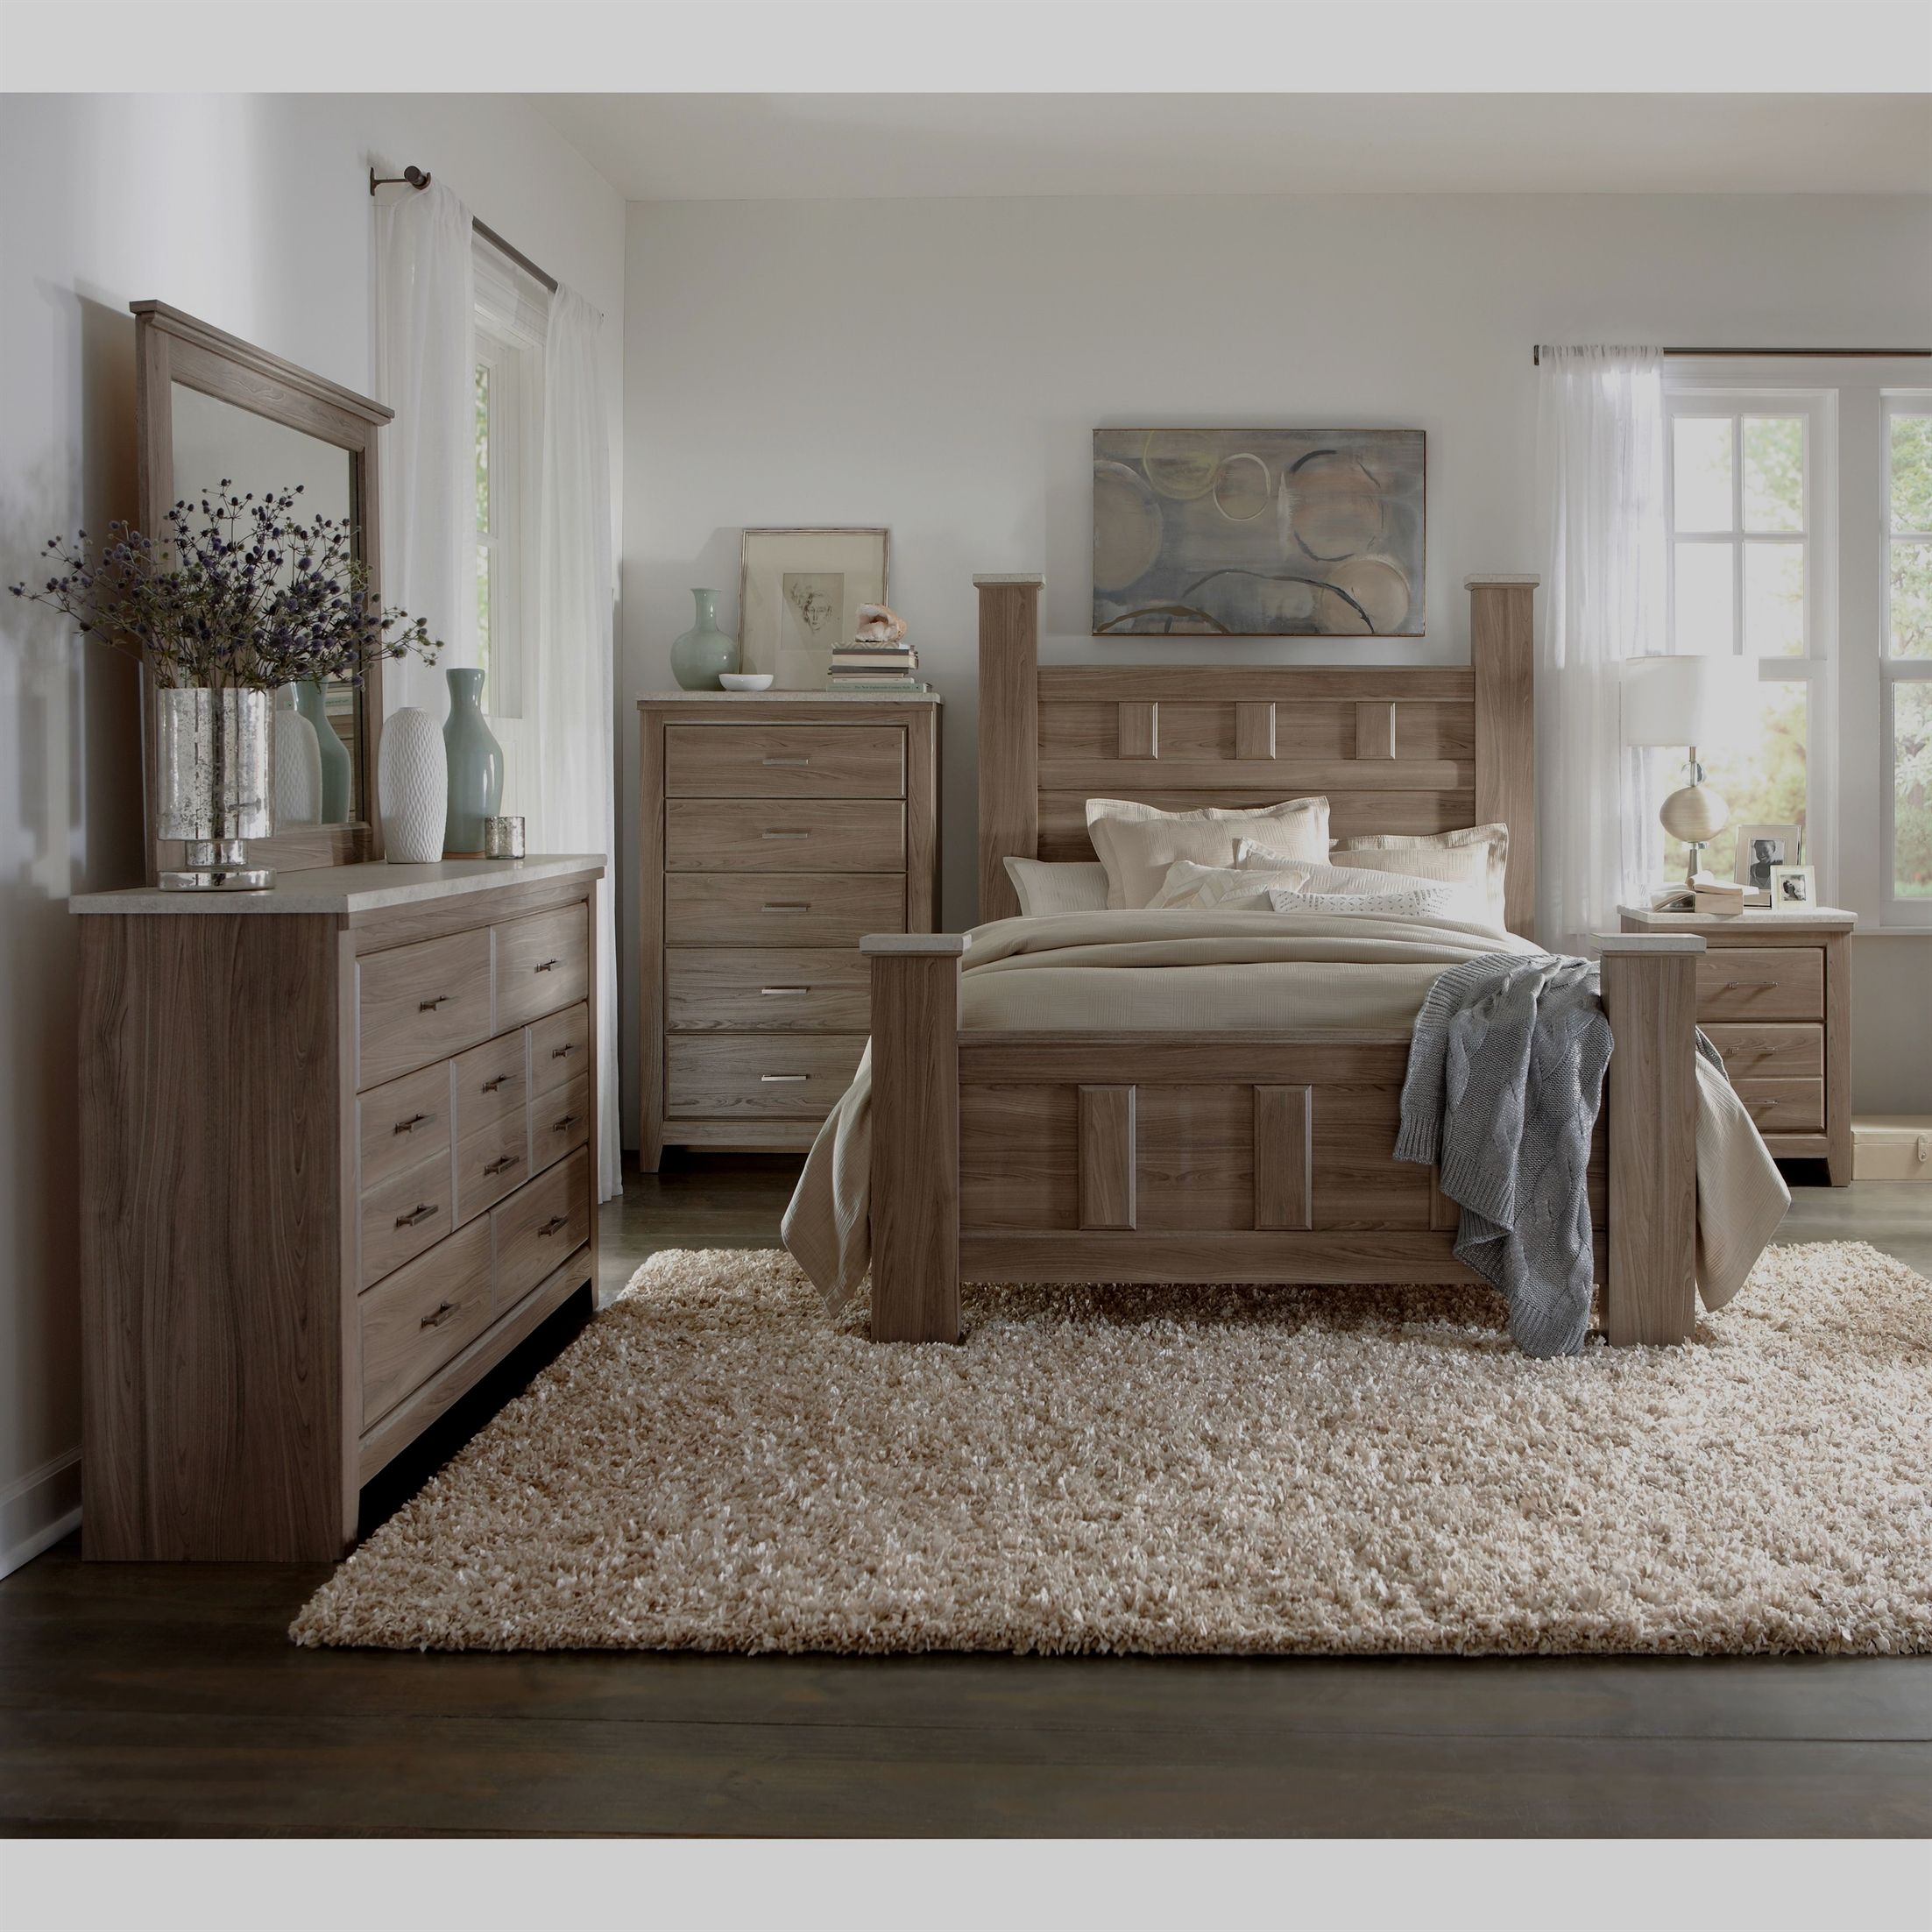 What Decor Over The Bed Bedroom Sets Queen Timeless Bedroom